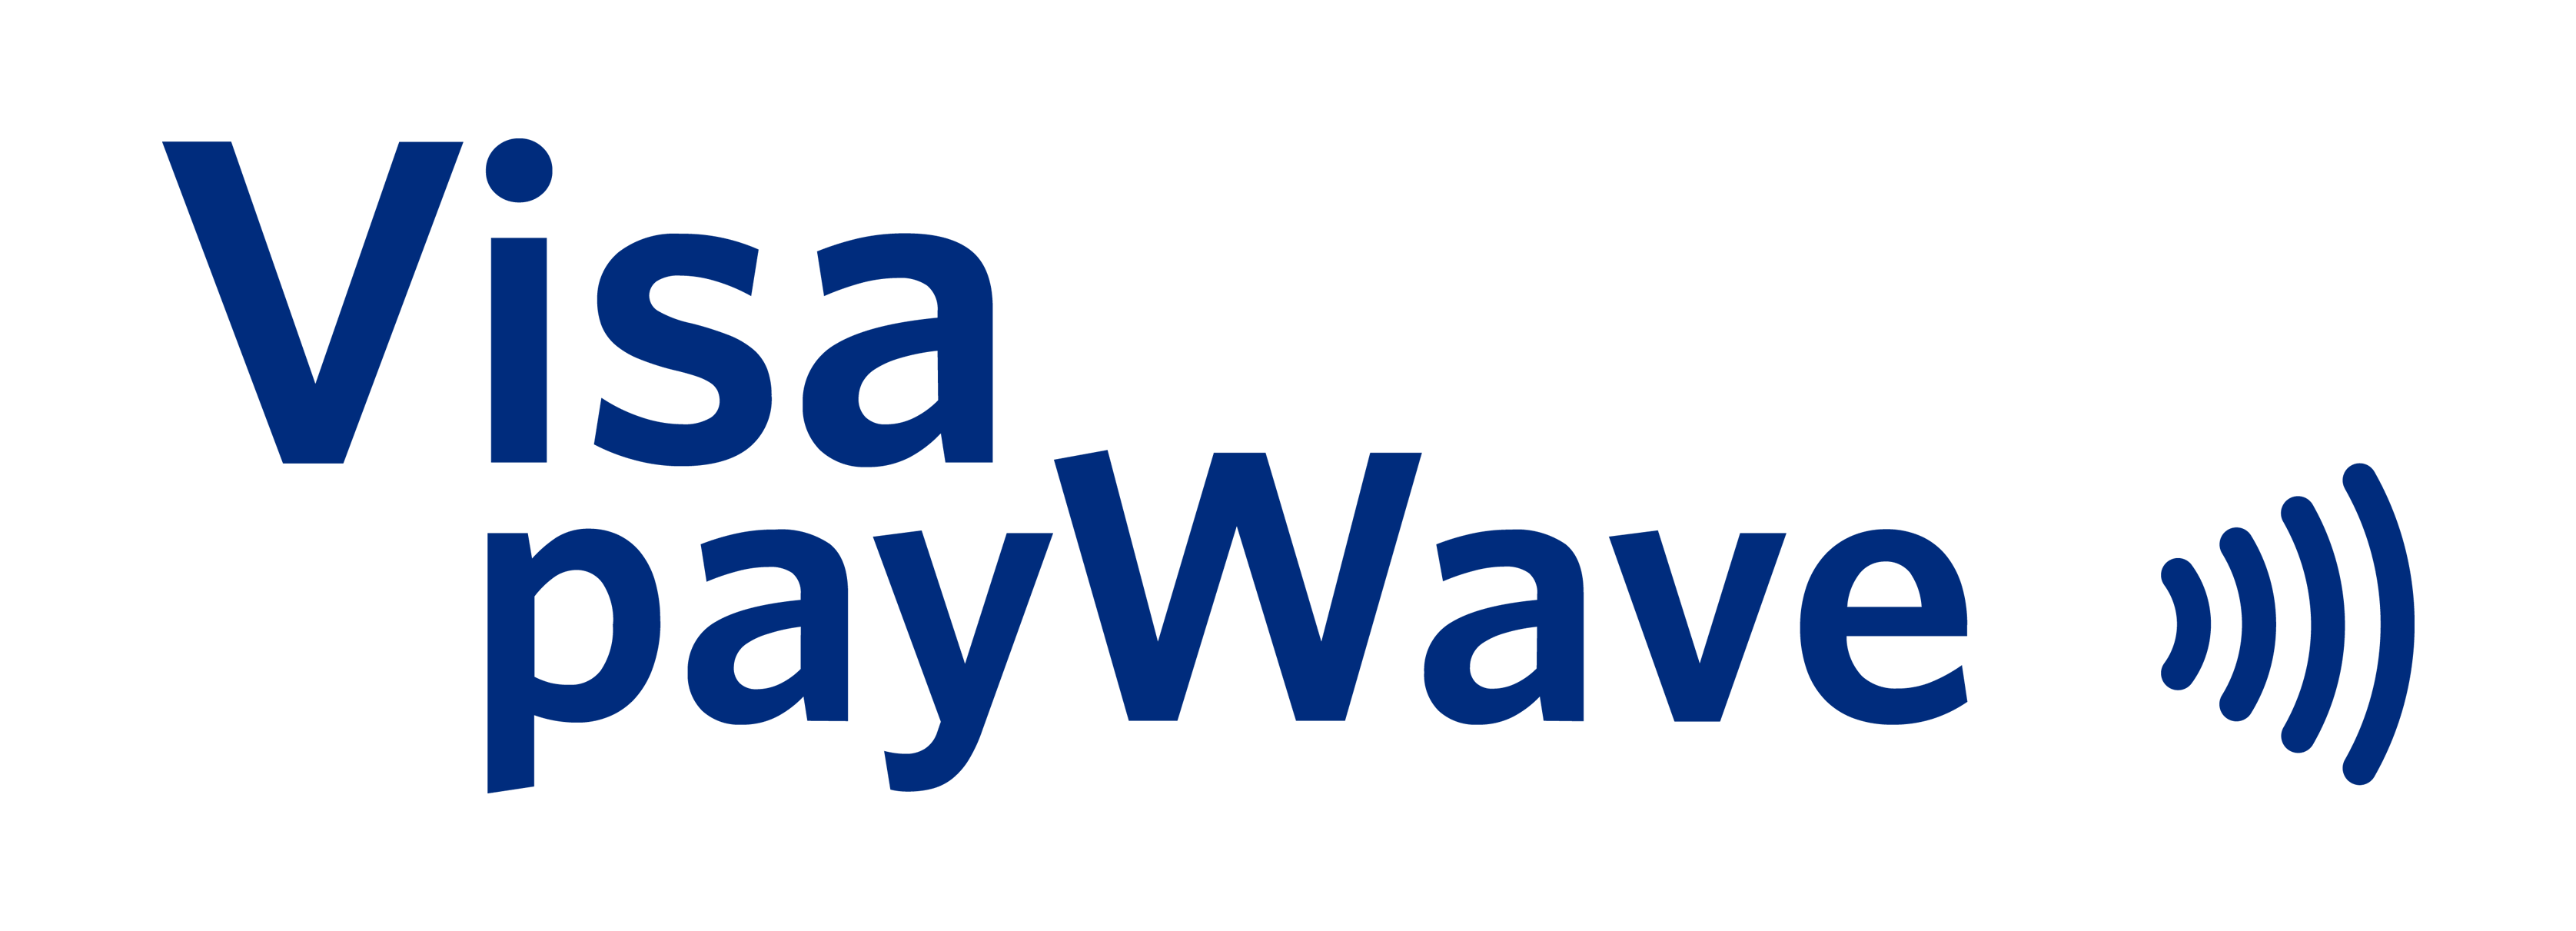 File:Visa-pay-wave.png - Wikimedia Commons